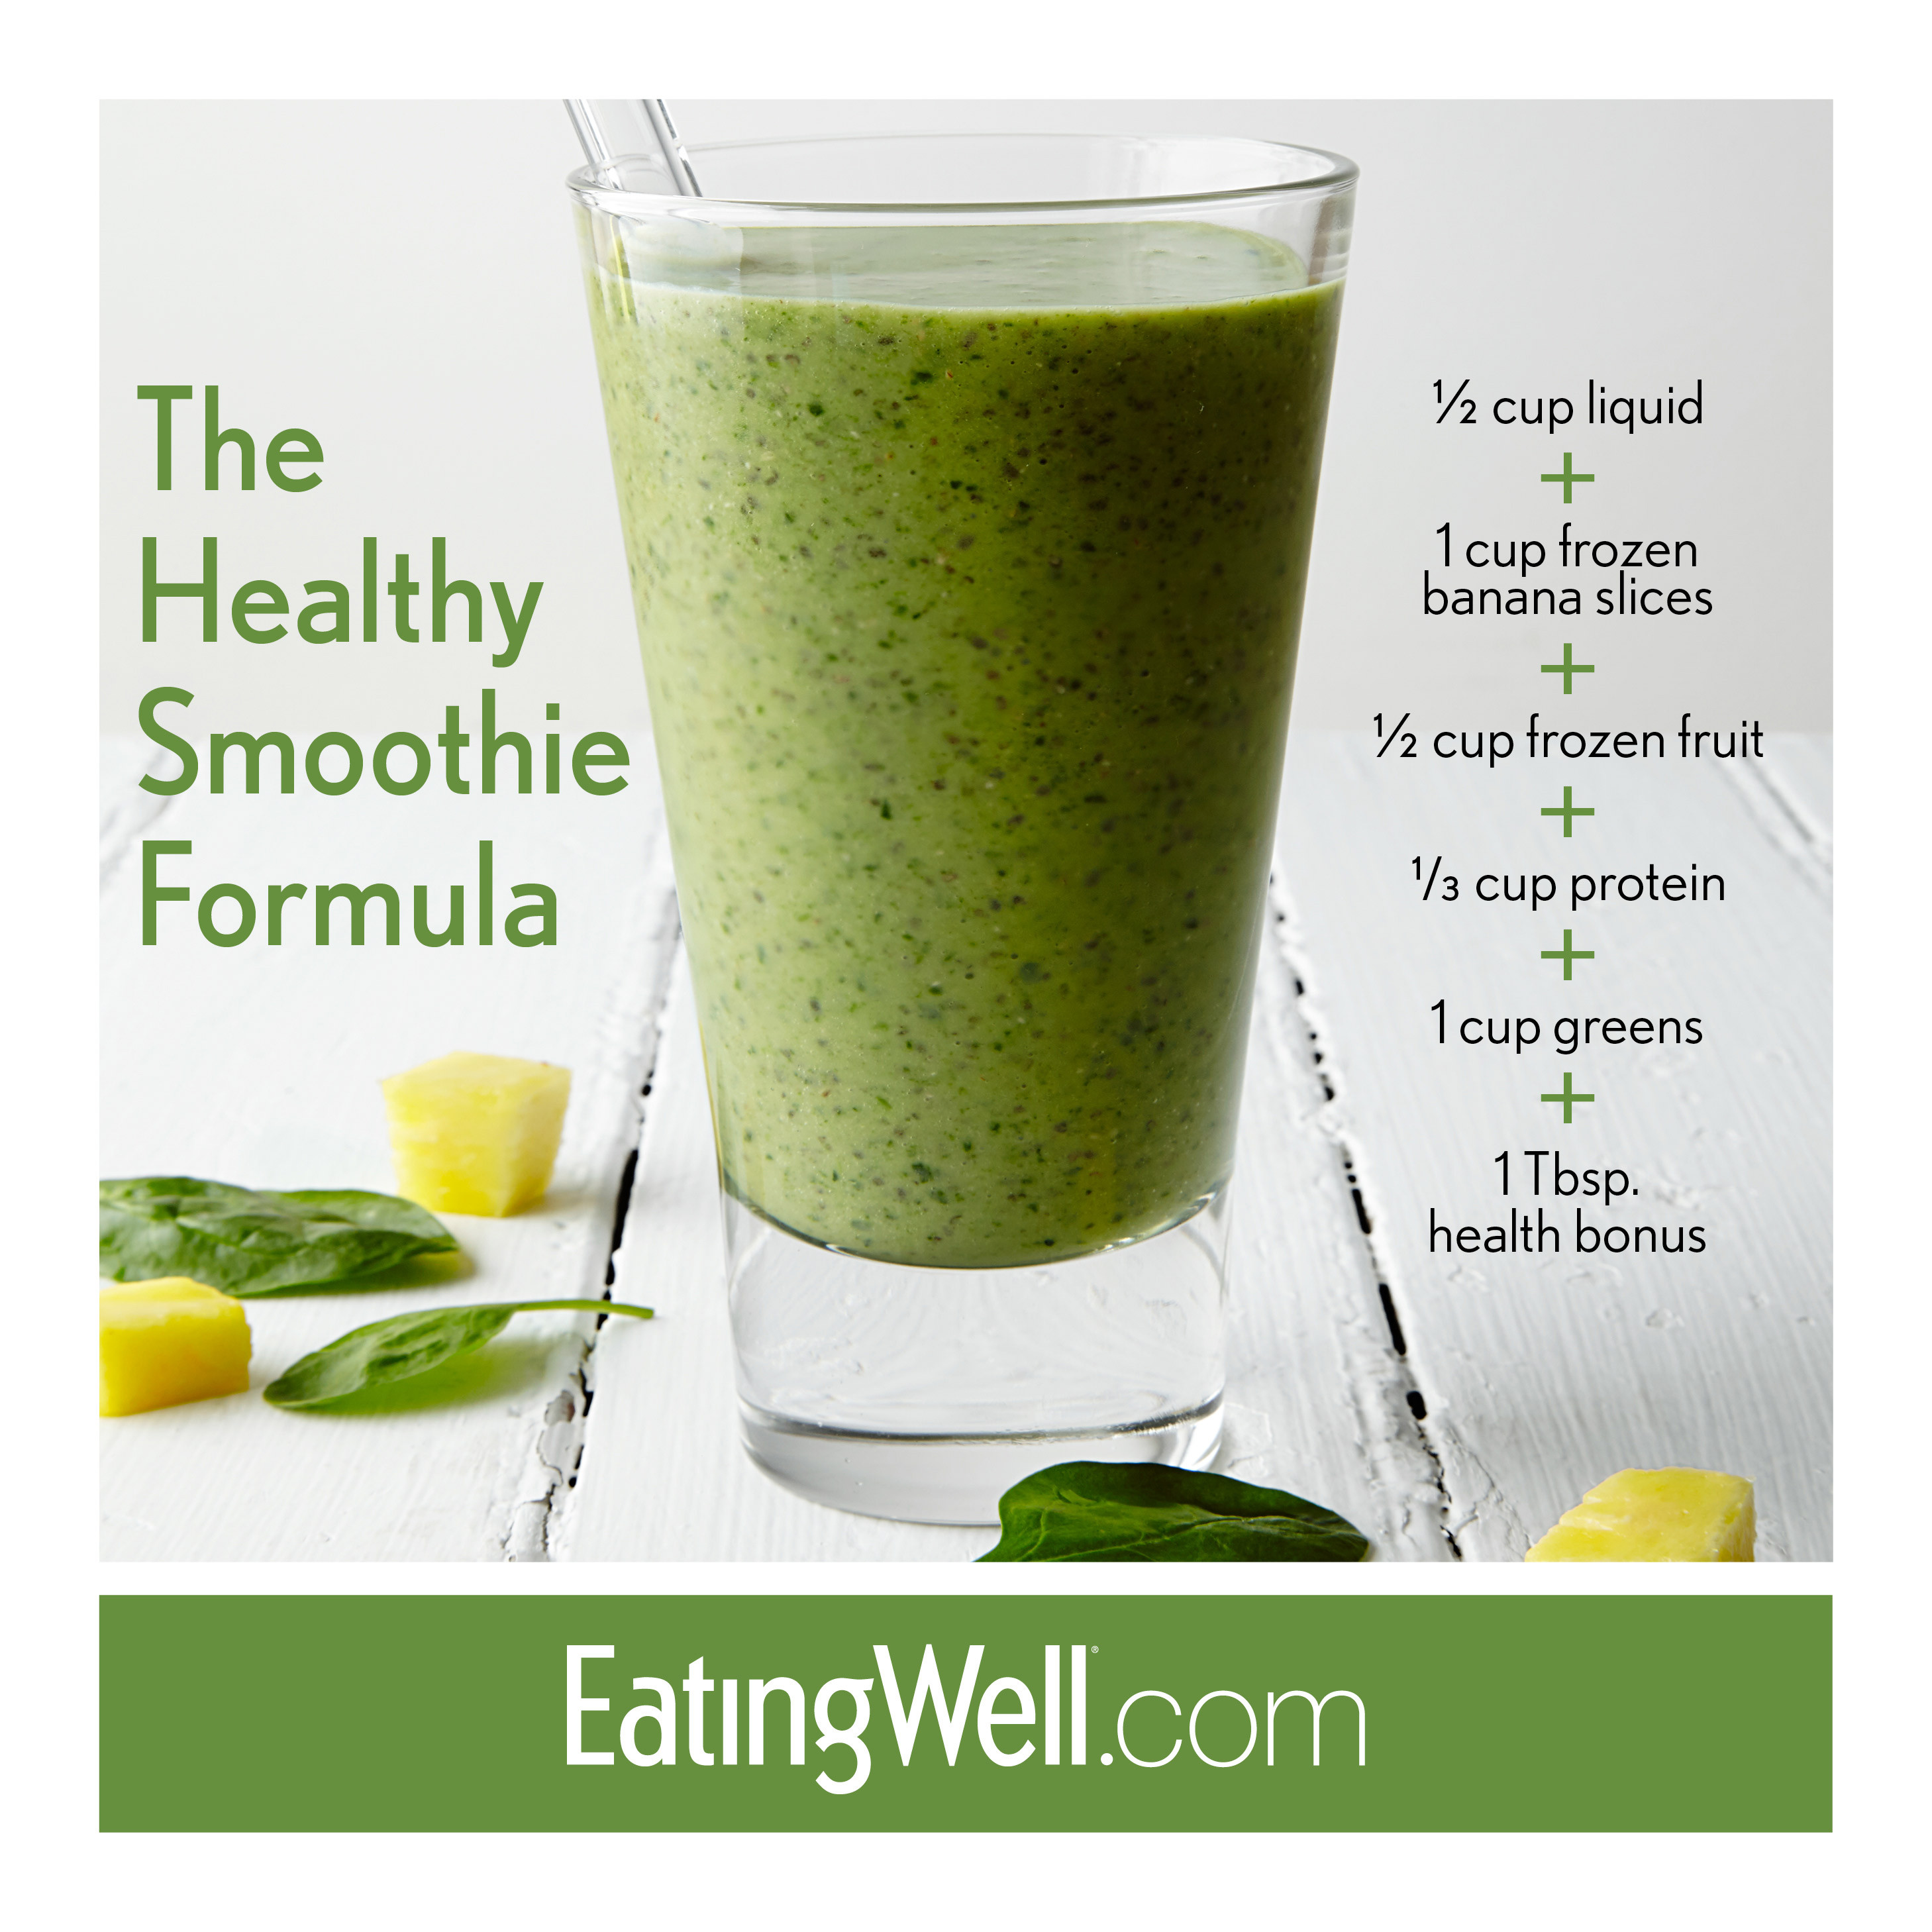 Green Smoothies Recipes  The Ultimate Green Smoothie Recipe EatingWell